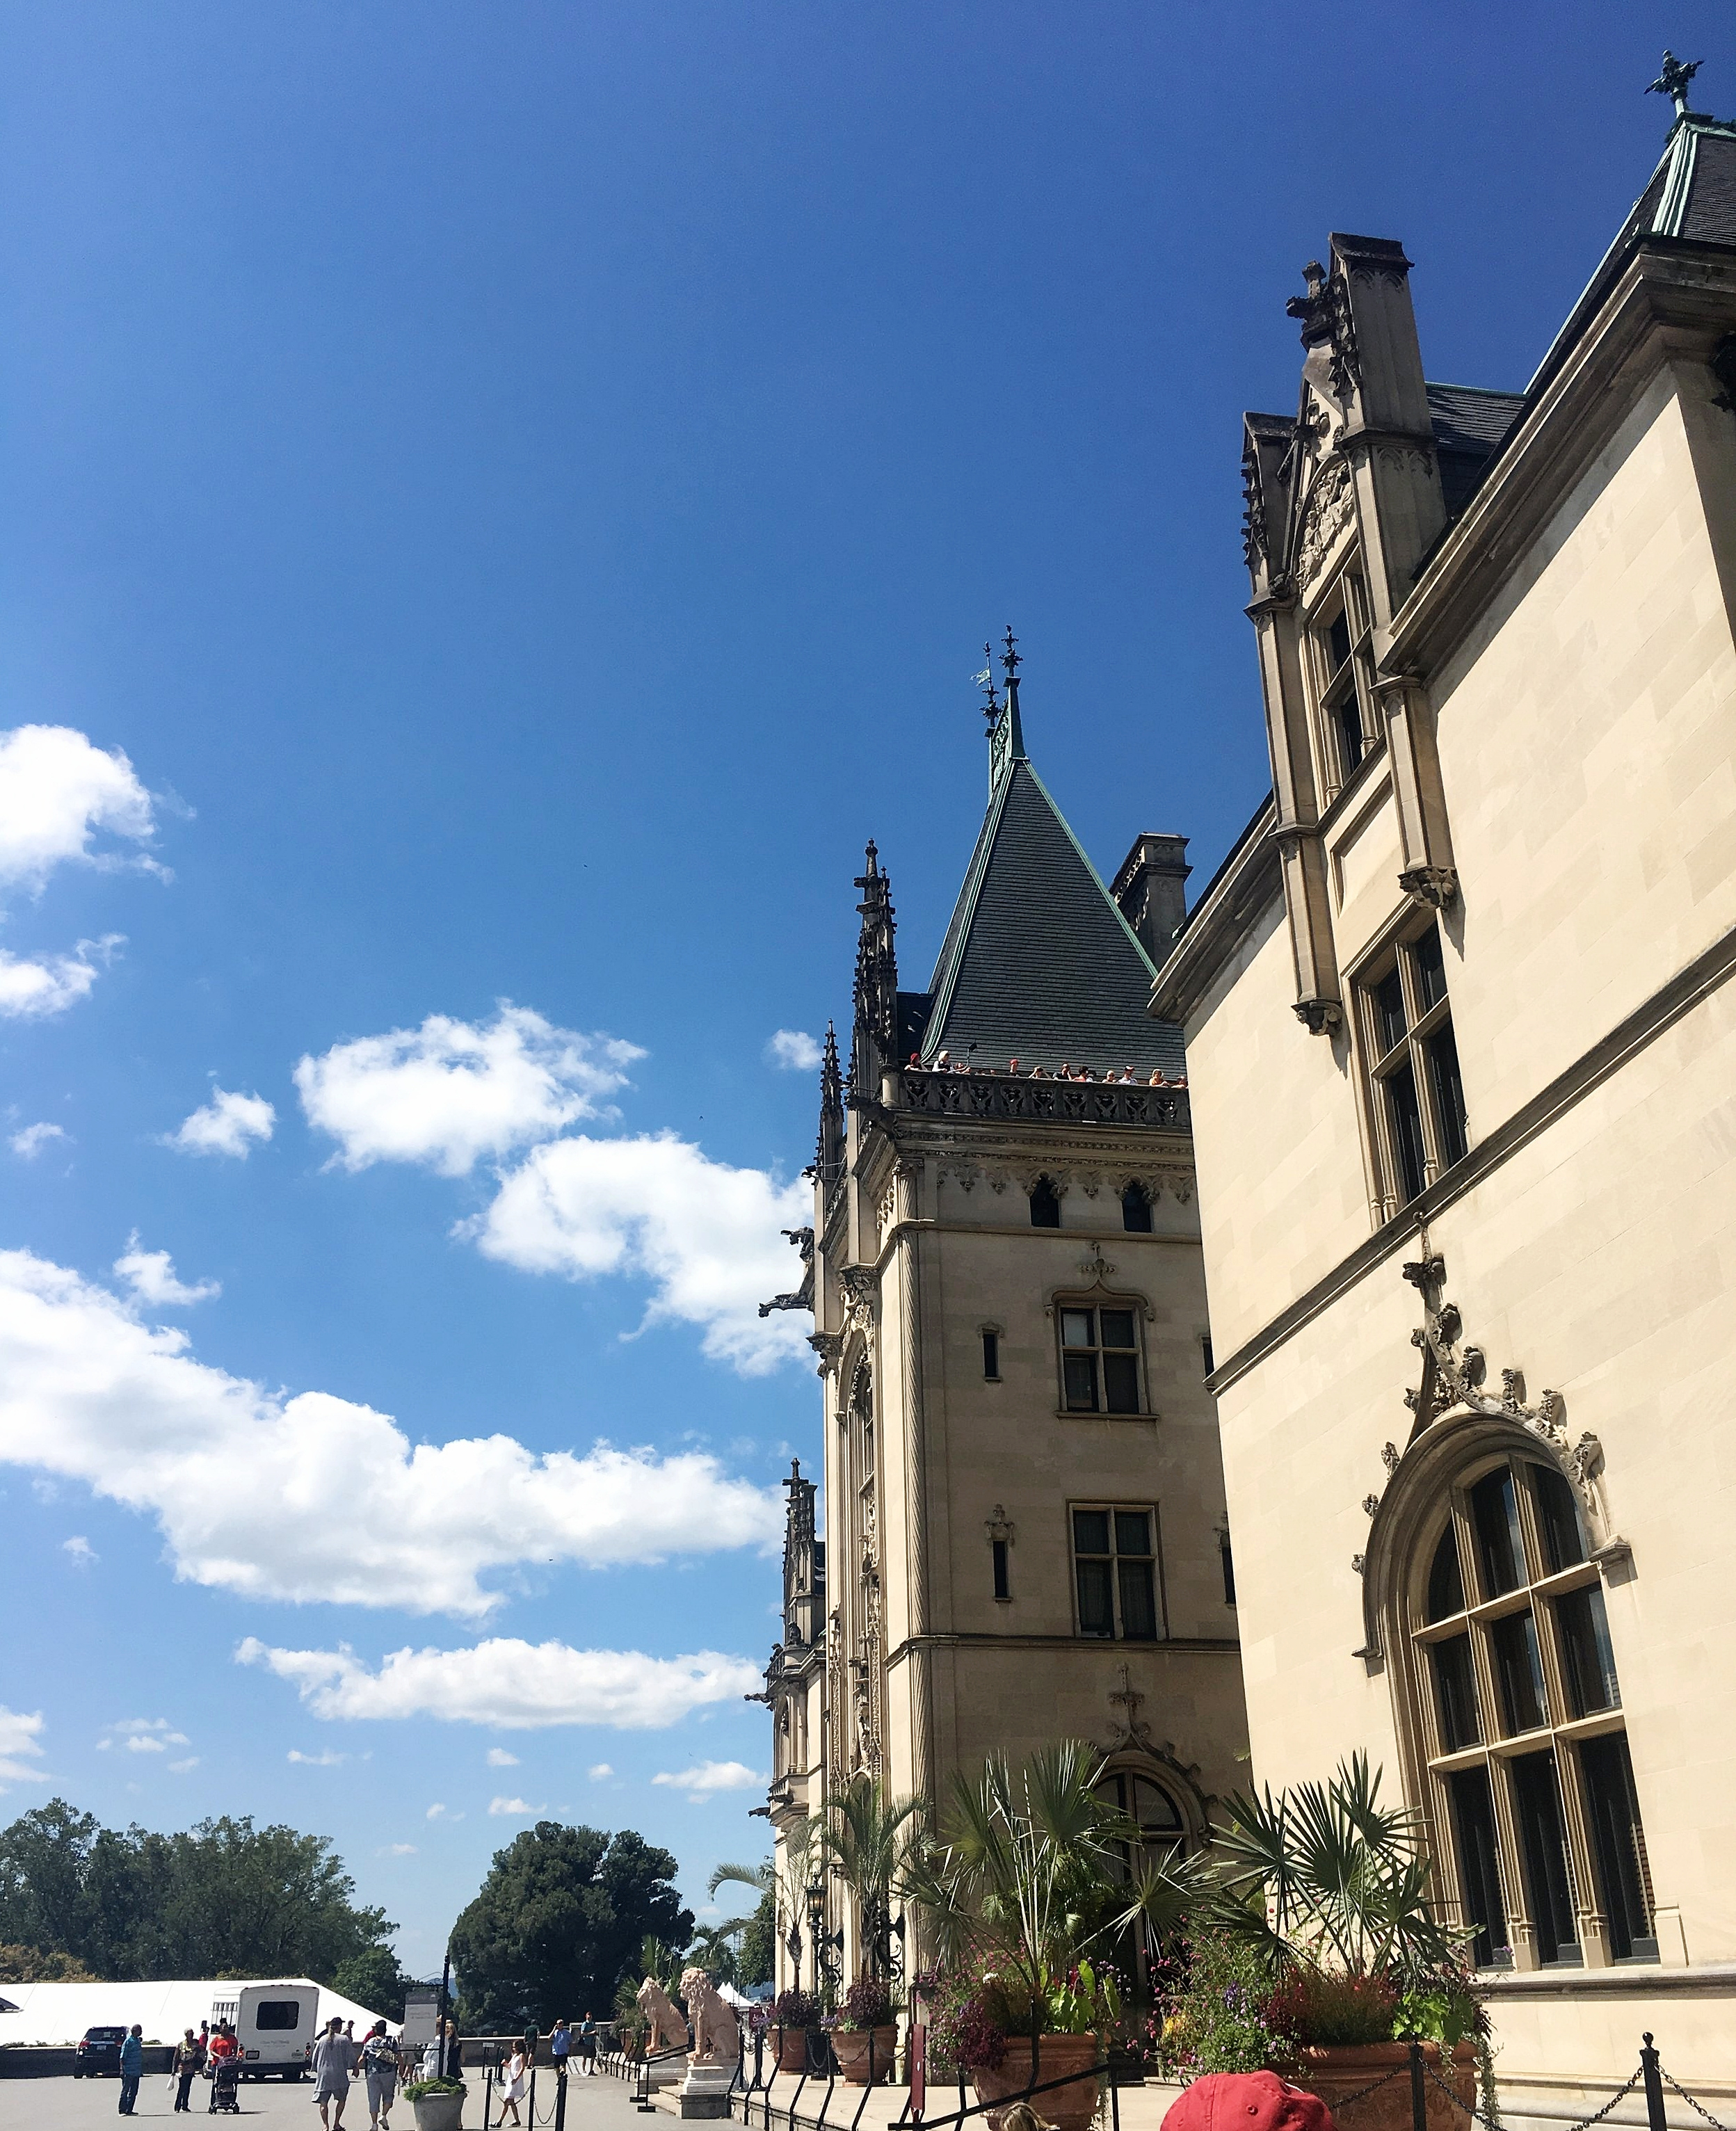 My first of hundreds of pictures at Biltmore Estate.